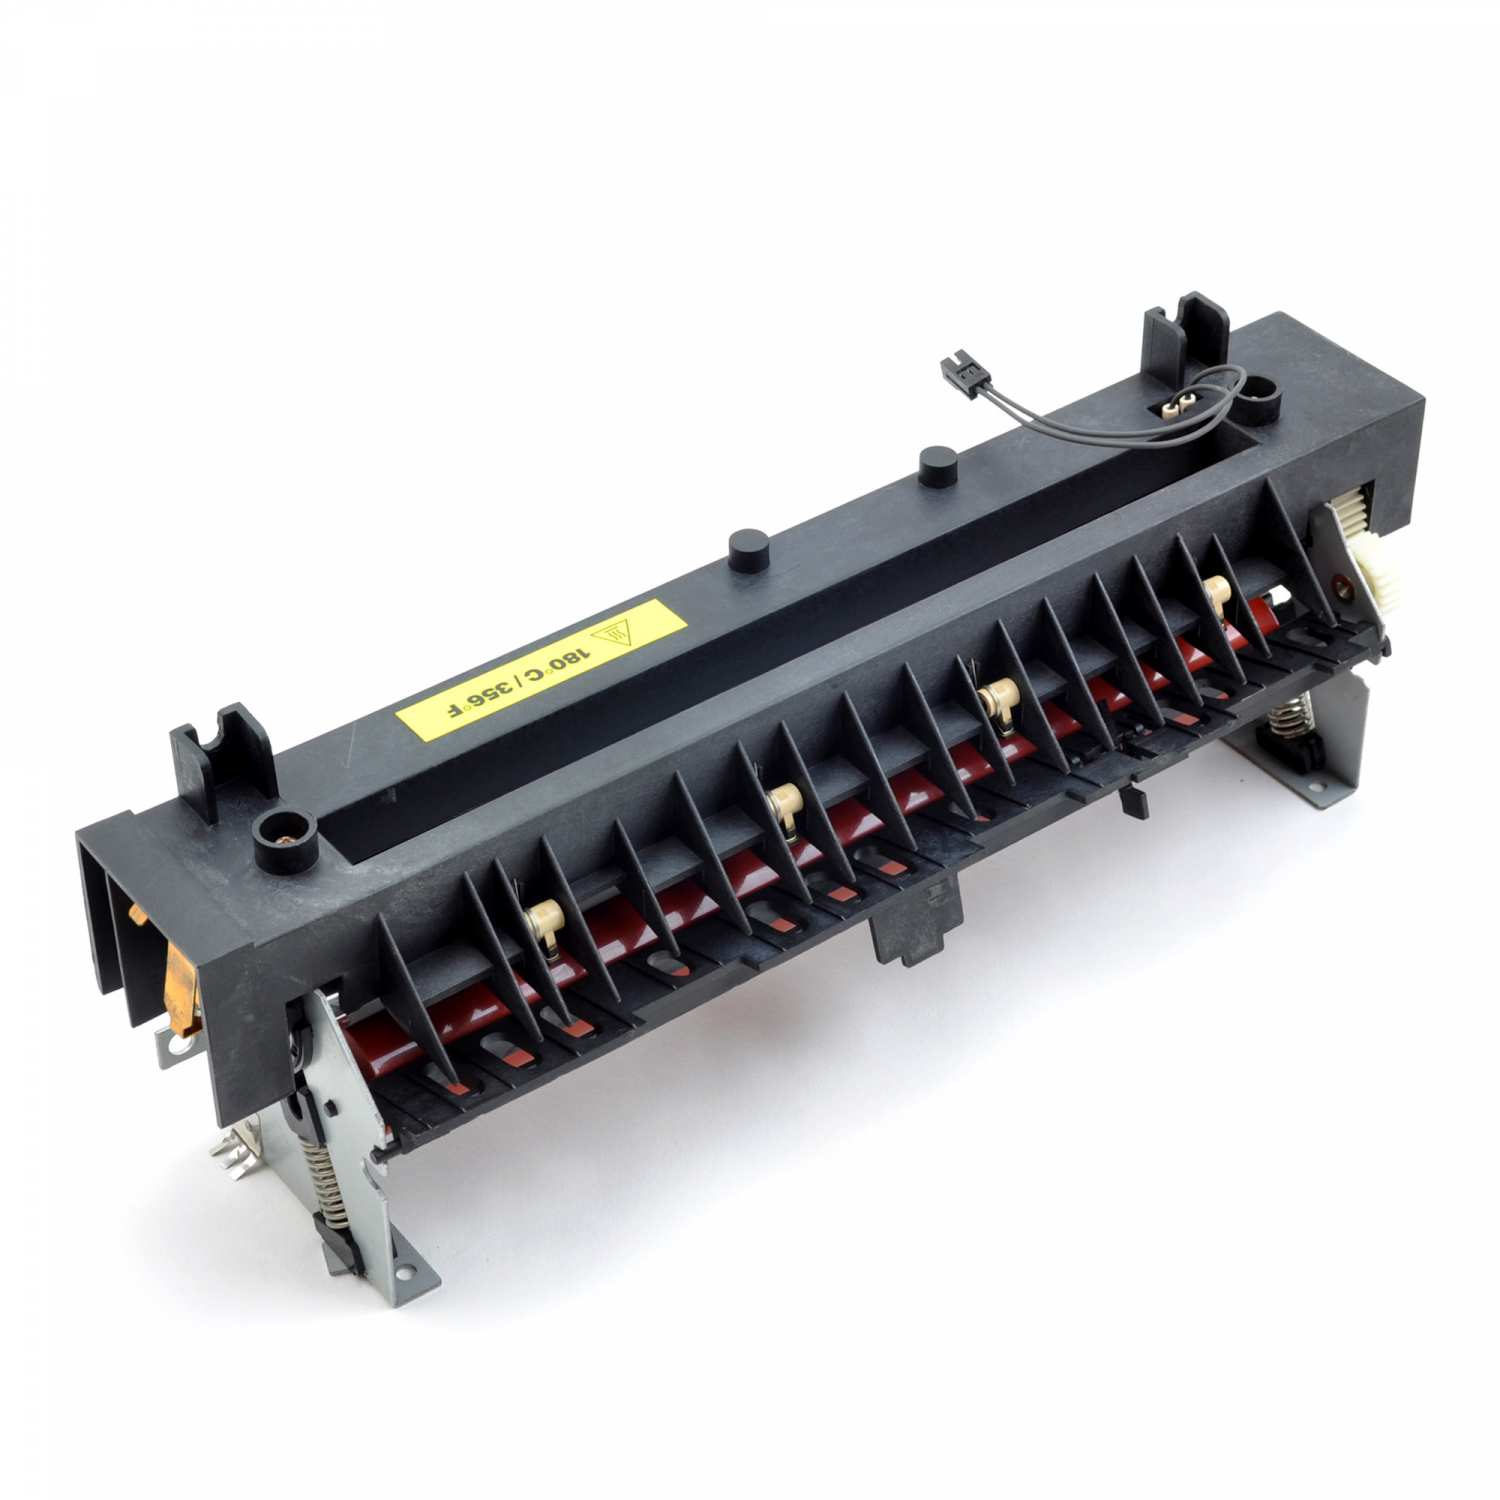 12G3985 Fuser Assembly (220V) - M412 Purchase for Lexmark Optra M41x